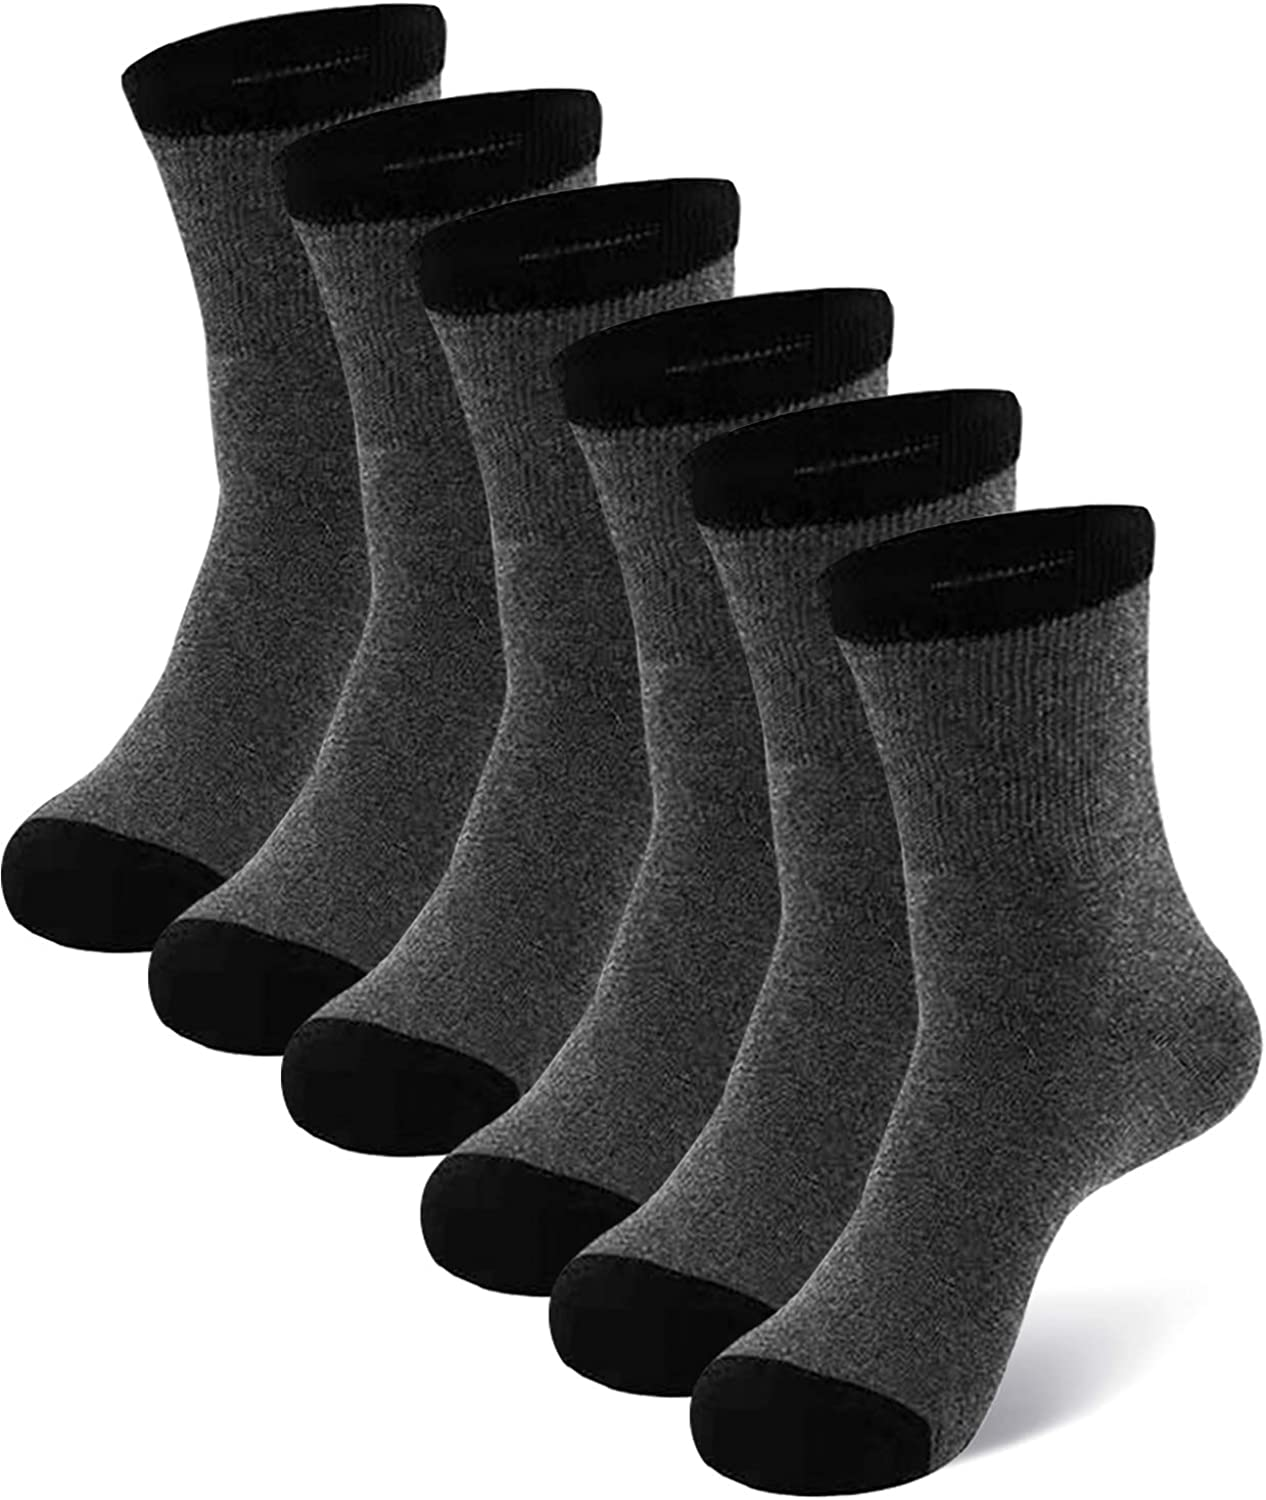 Mens Diabetic Socks with Non-binding Top and Seamless Extra Wide Cotton Ankle